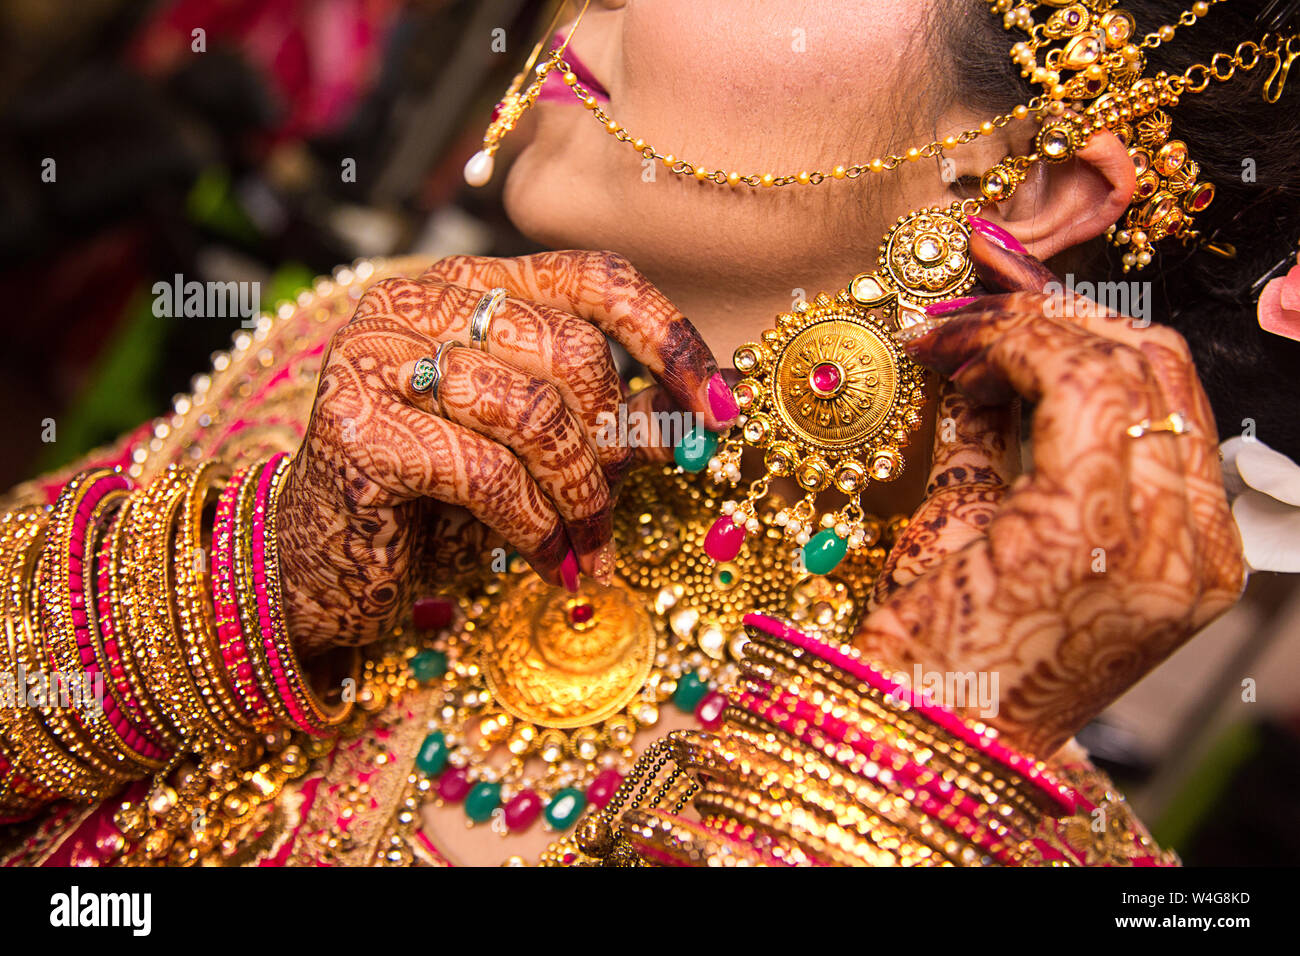 Indian Bride Wearing Heavy Jewellery Traditional Gold Necklace And Earring Wedding Day Stock Photo Alamy